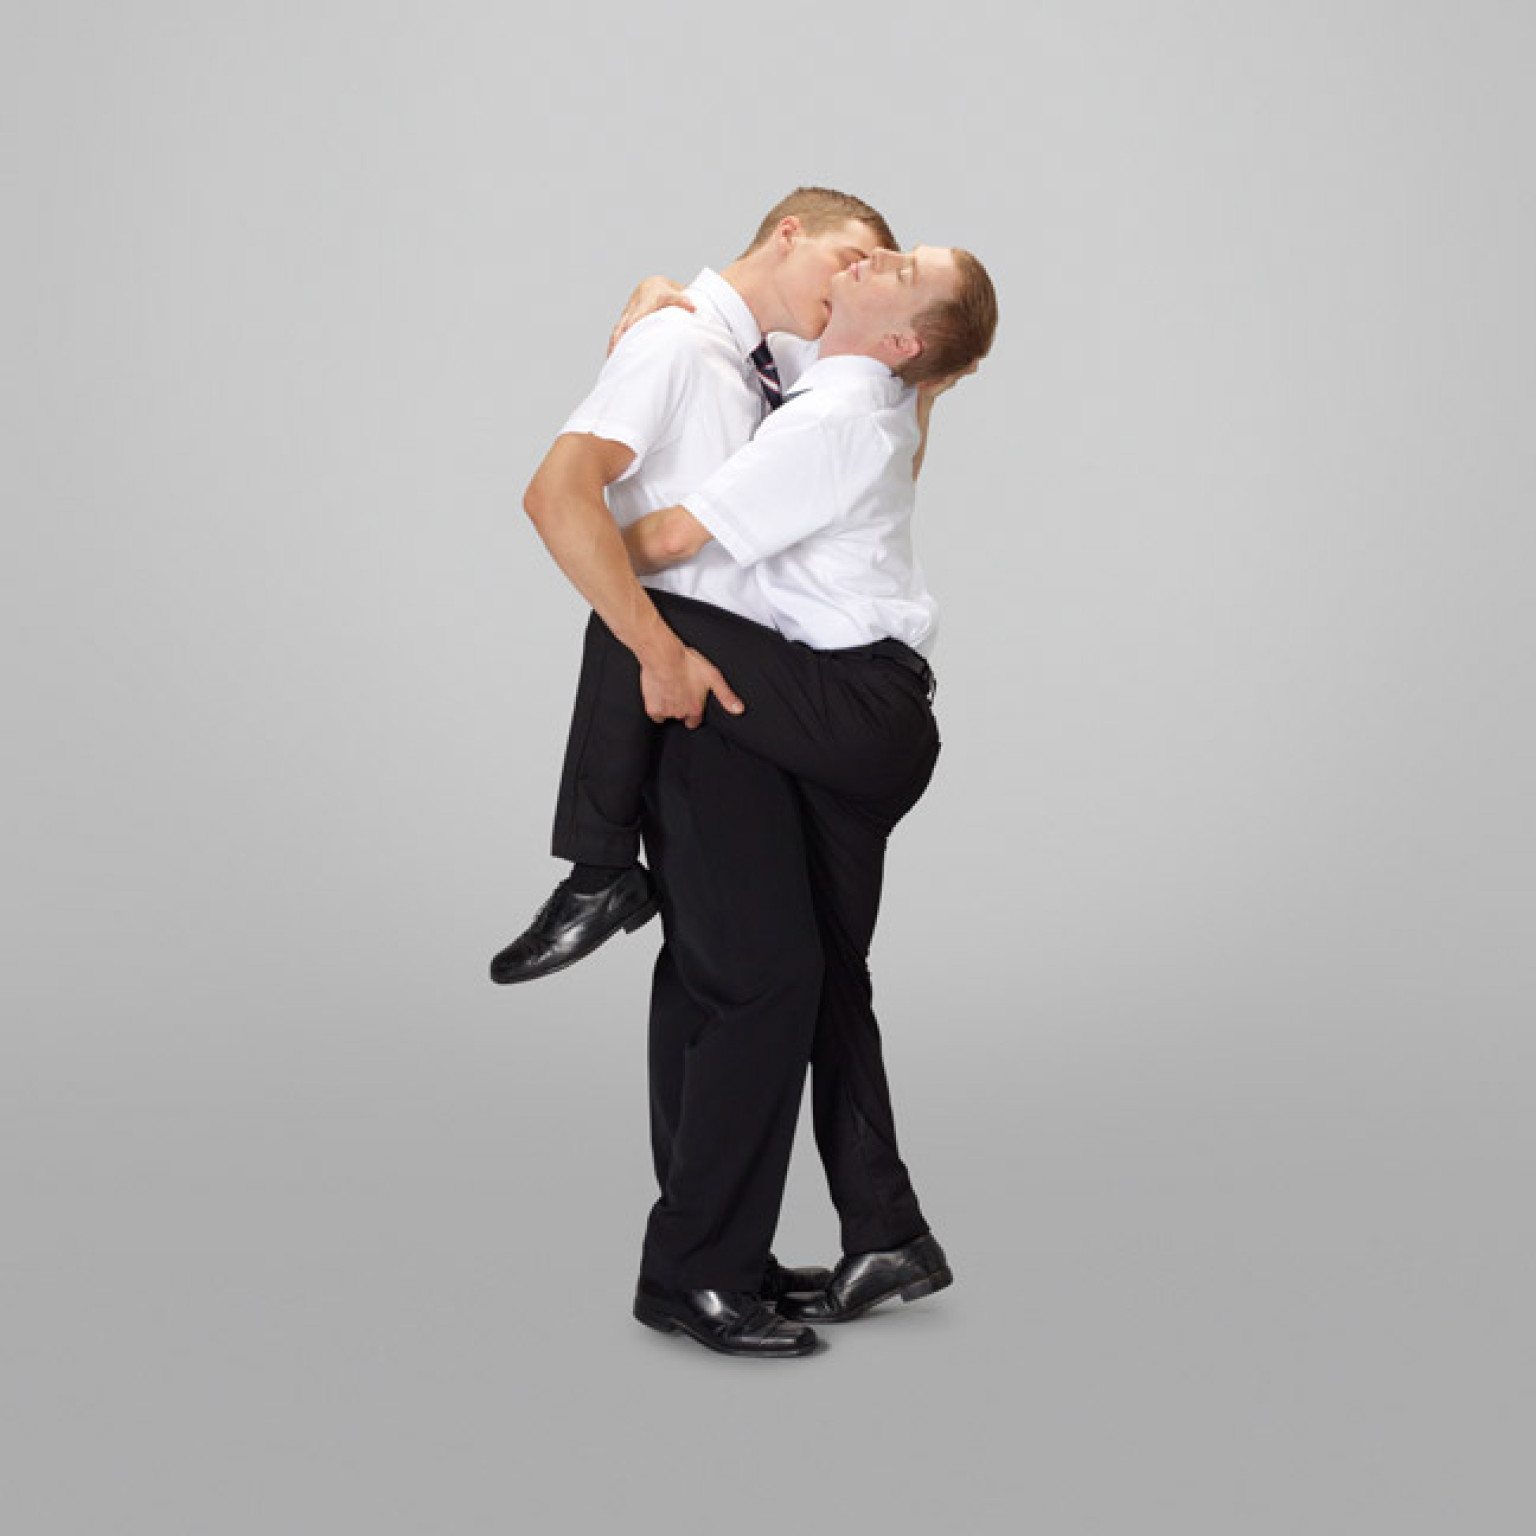 Gay sex missionary position